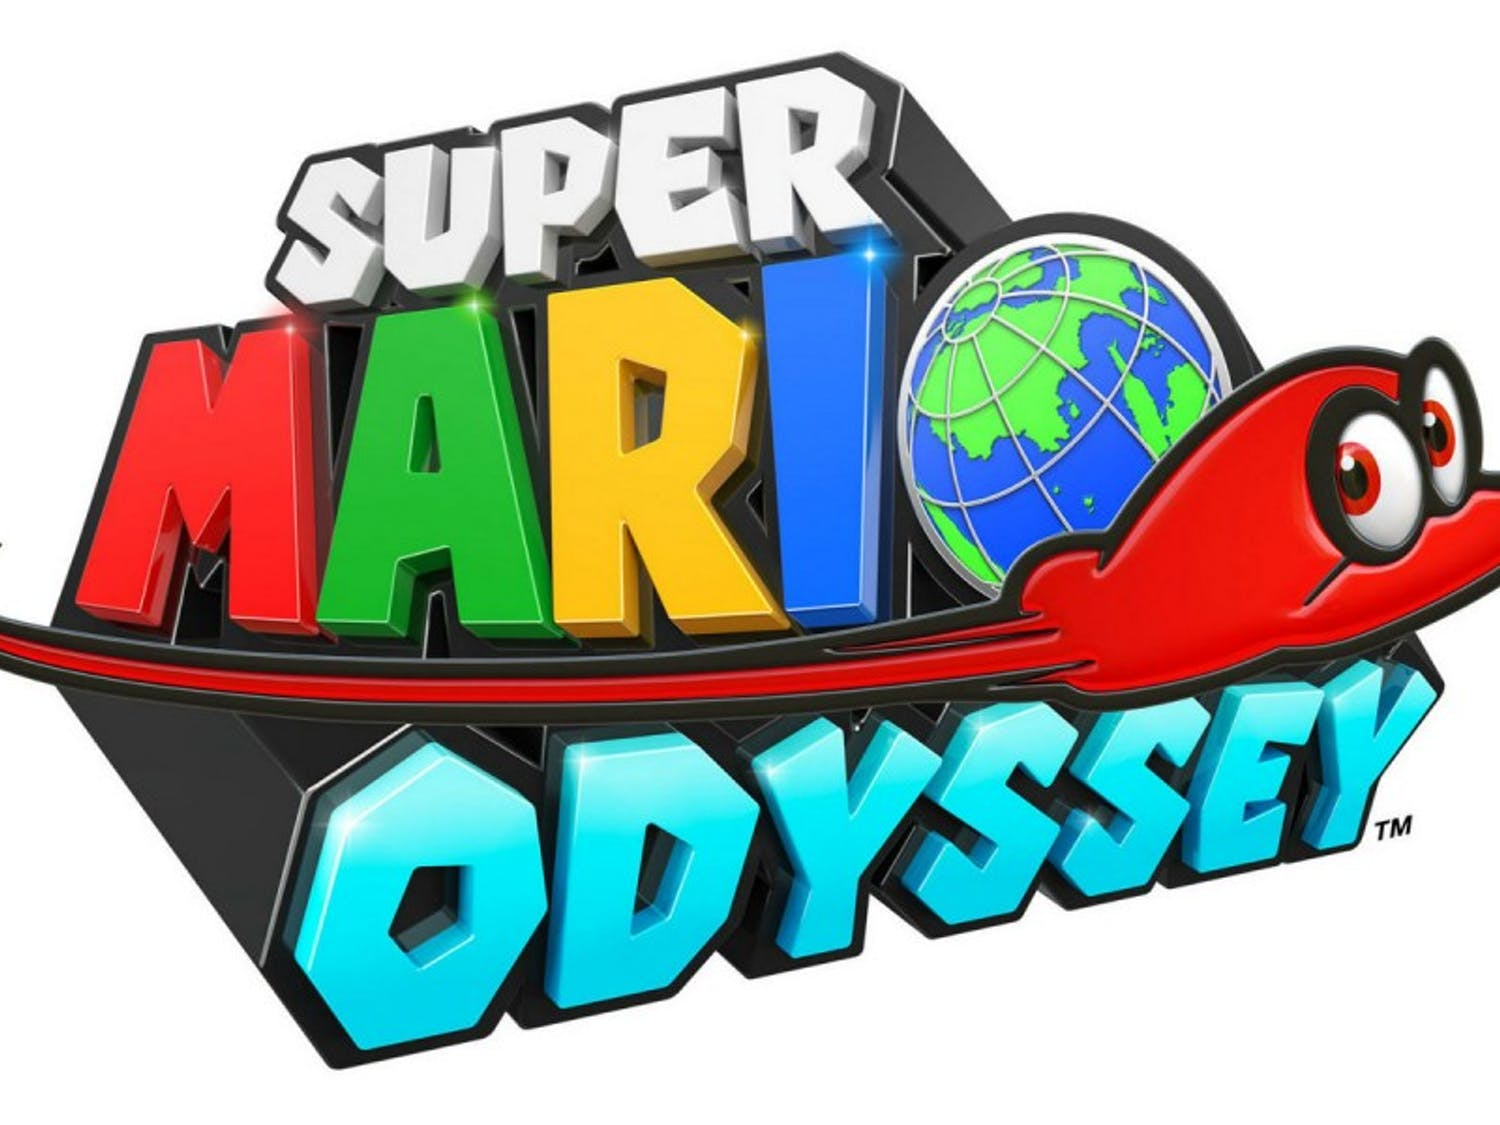 Several high-profile games are set to release this October, including Super Mario Odyssey.